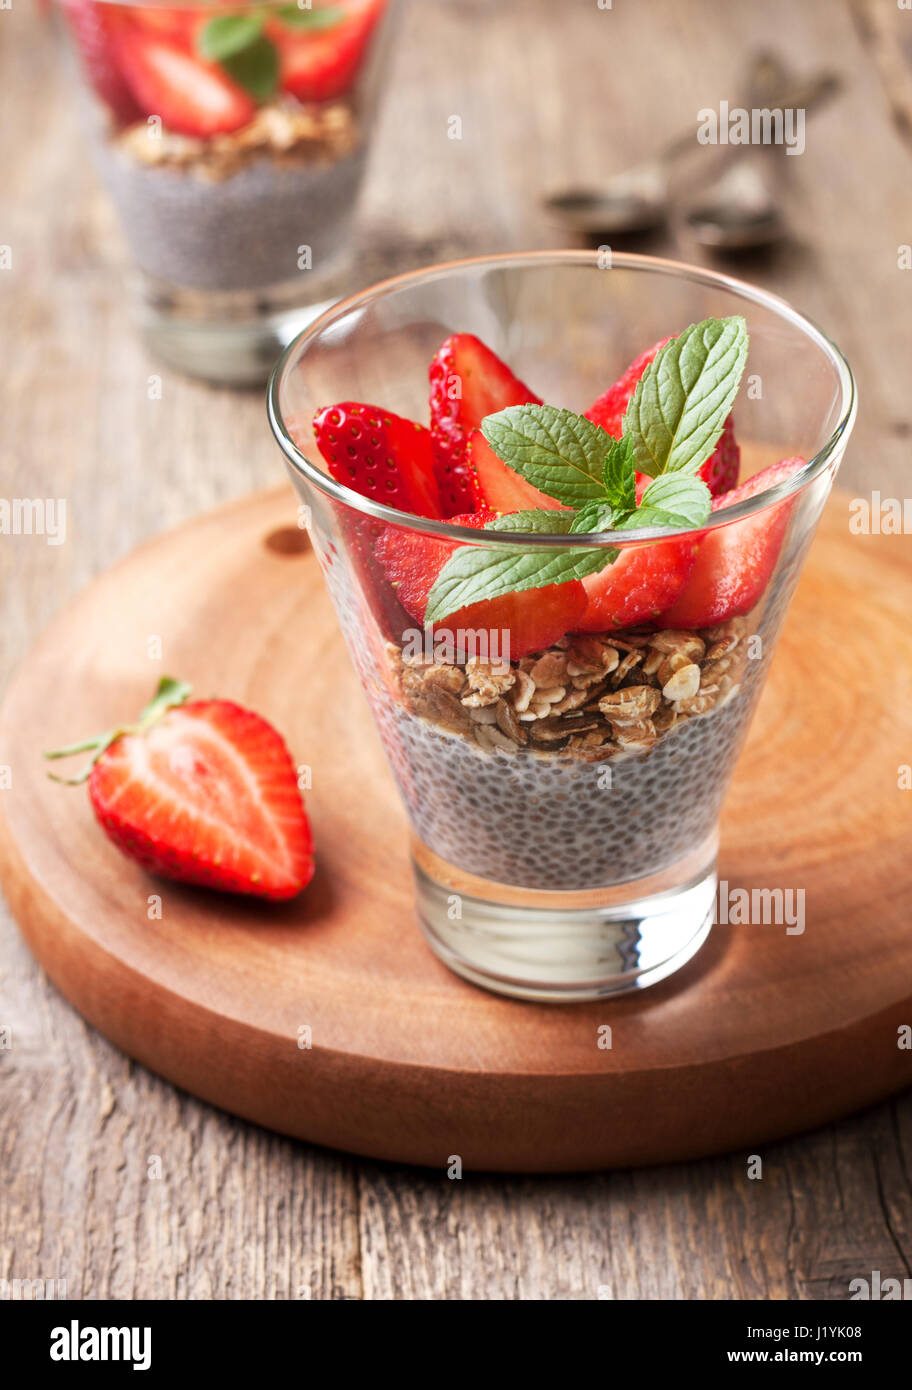 Diet Healthy Breakfast Chia Pudding Strawberries And Muesli In A